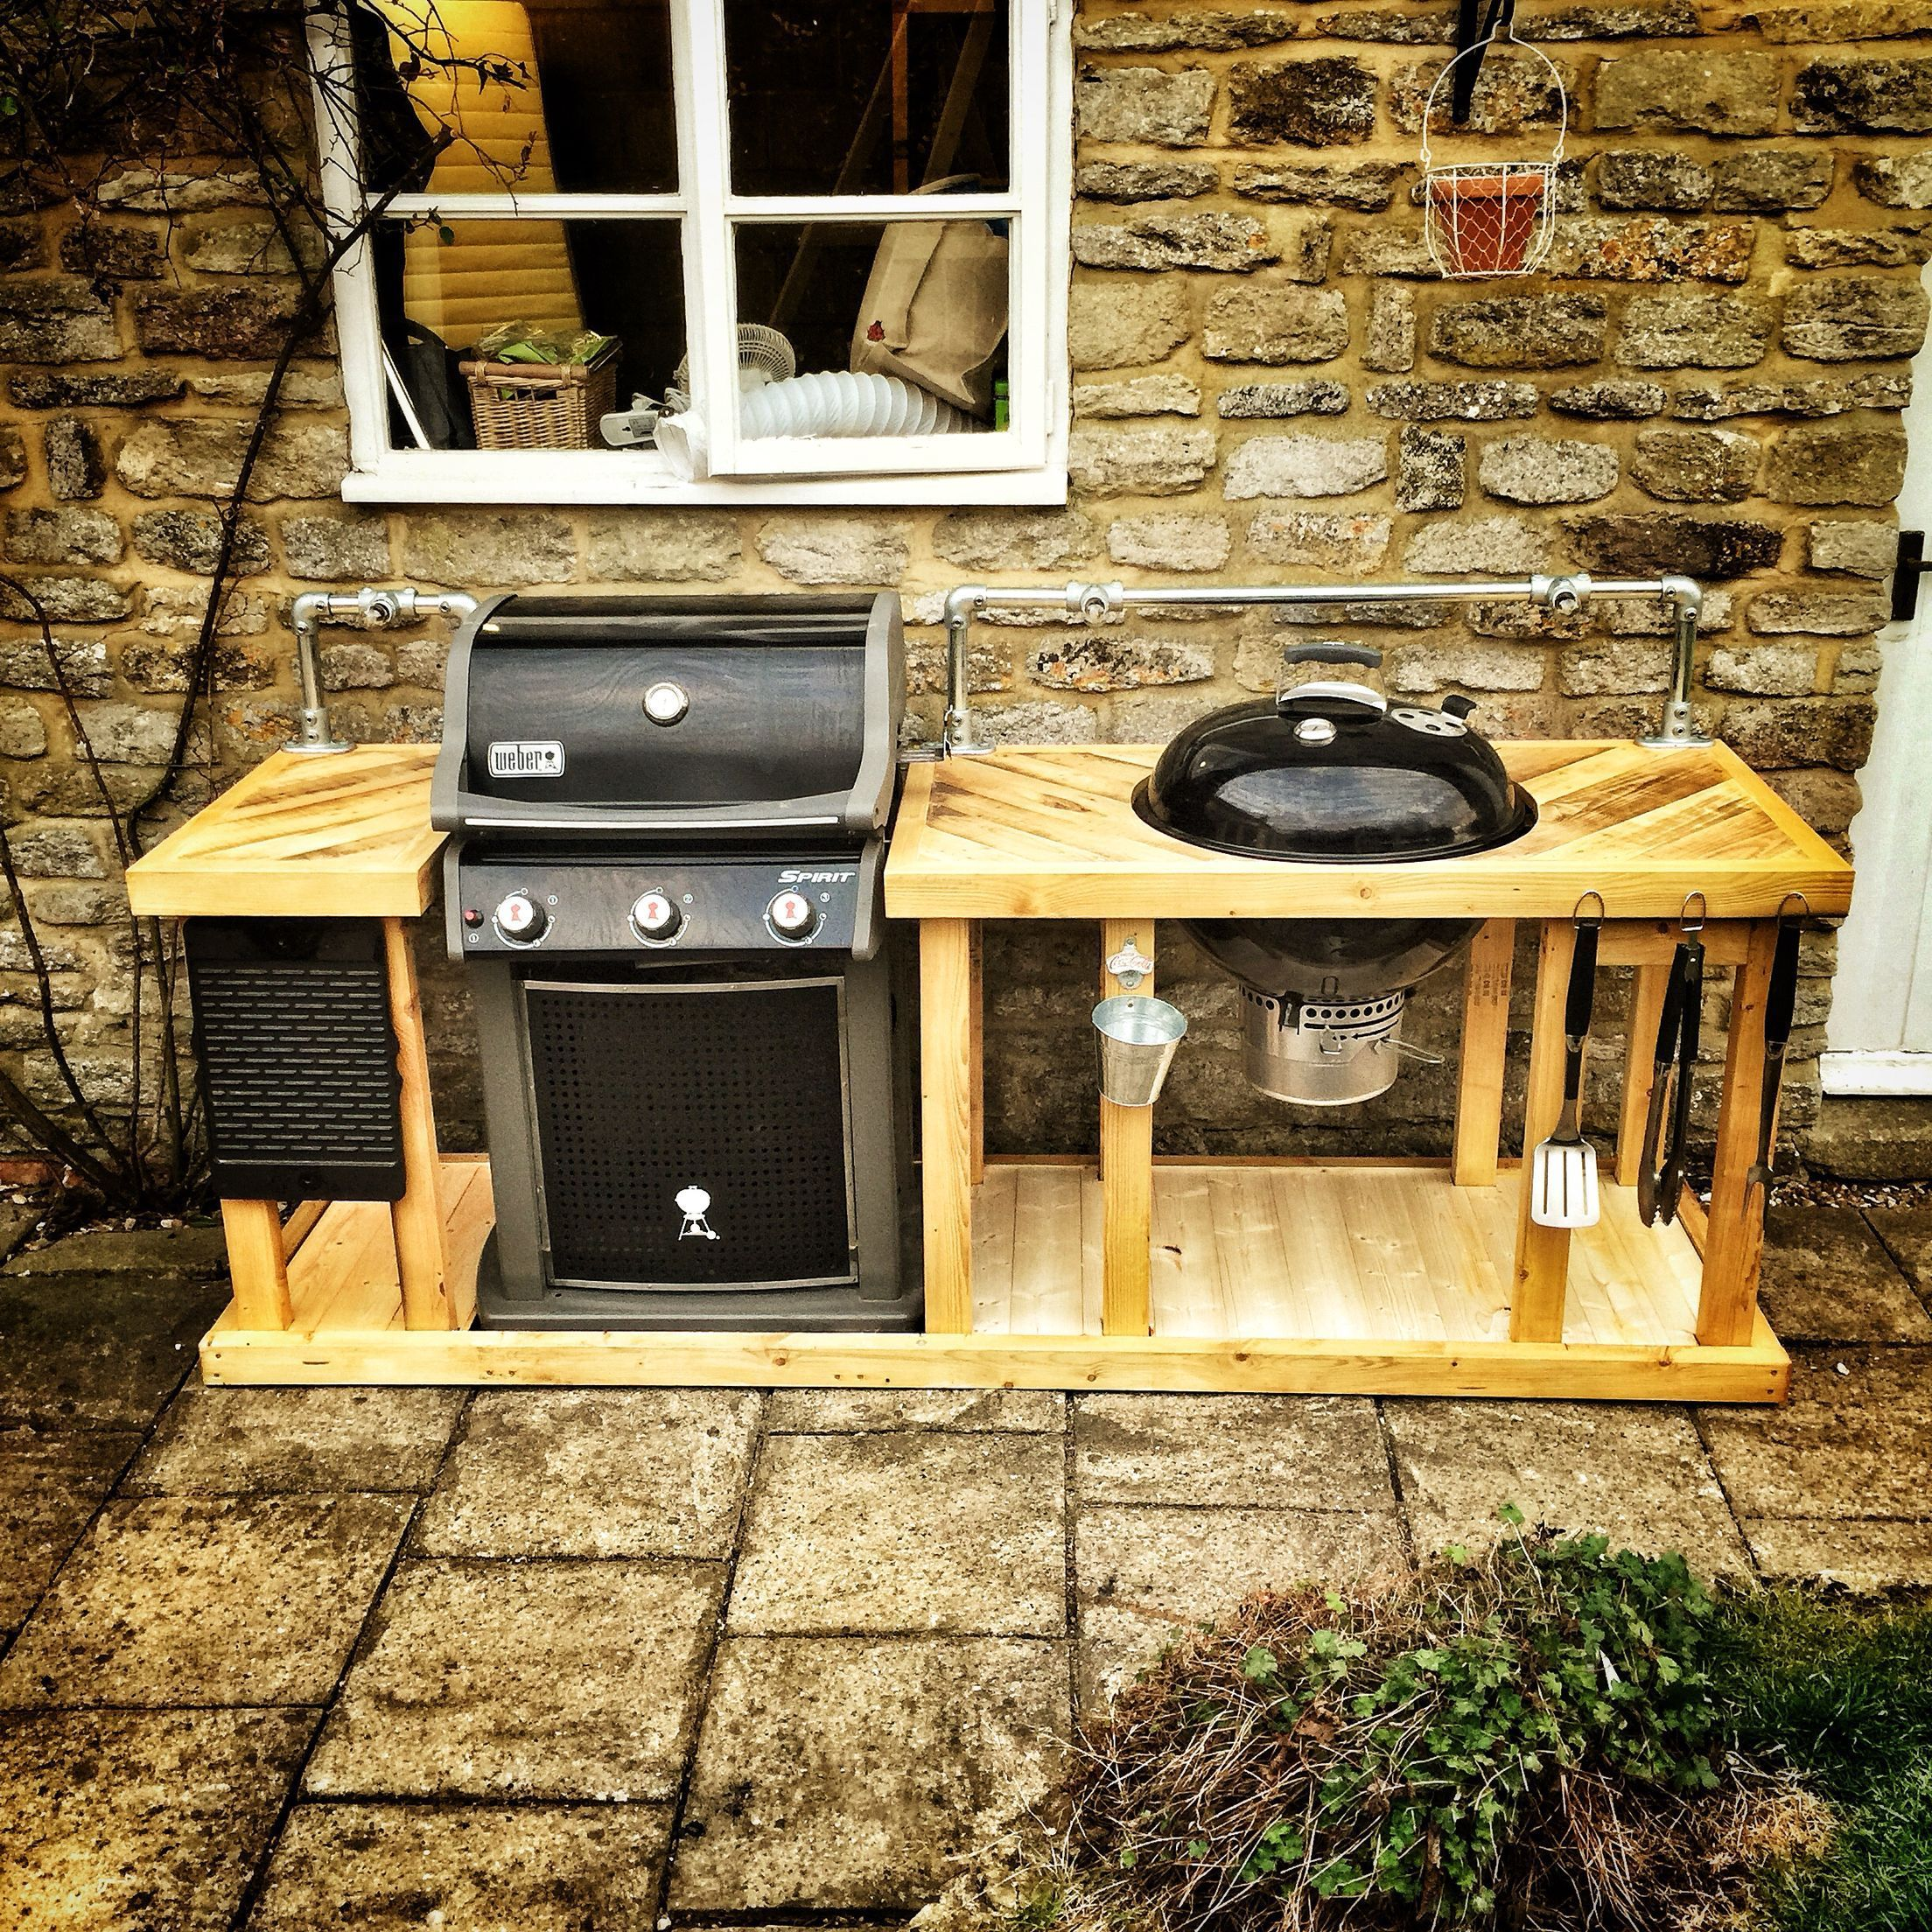 A Weber Mega Grill Combining A Weber Gas And Charcoal Bbq Into An Outdoor Kitchen Area Diy Outdoor Kitchen Outdoor Kitchen Outdoor Grill Area